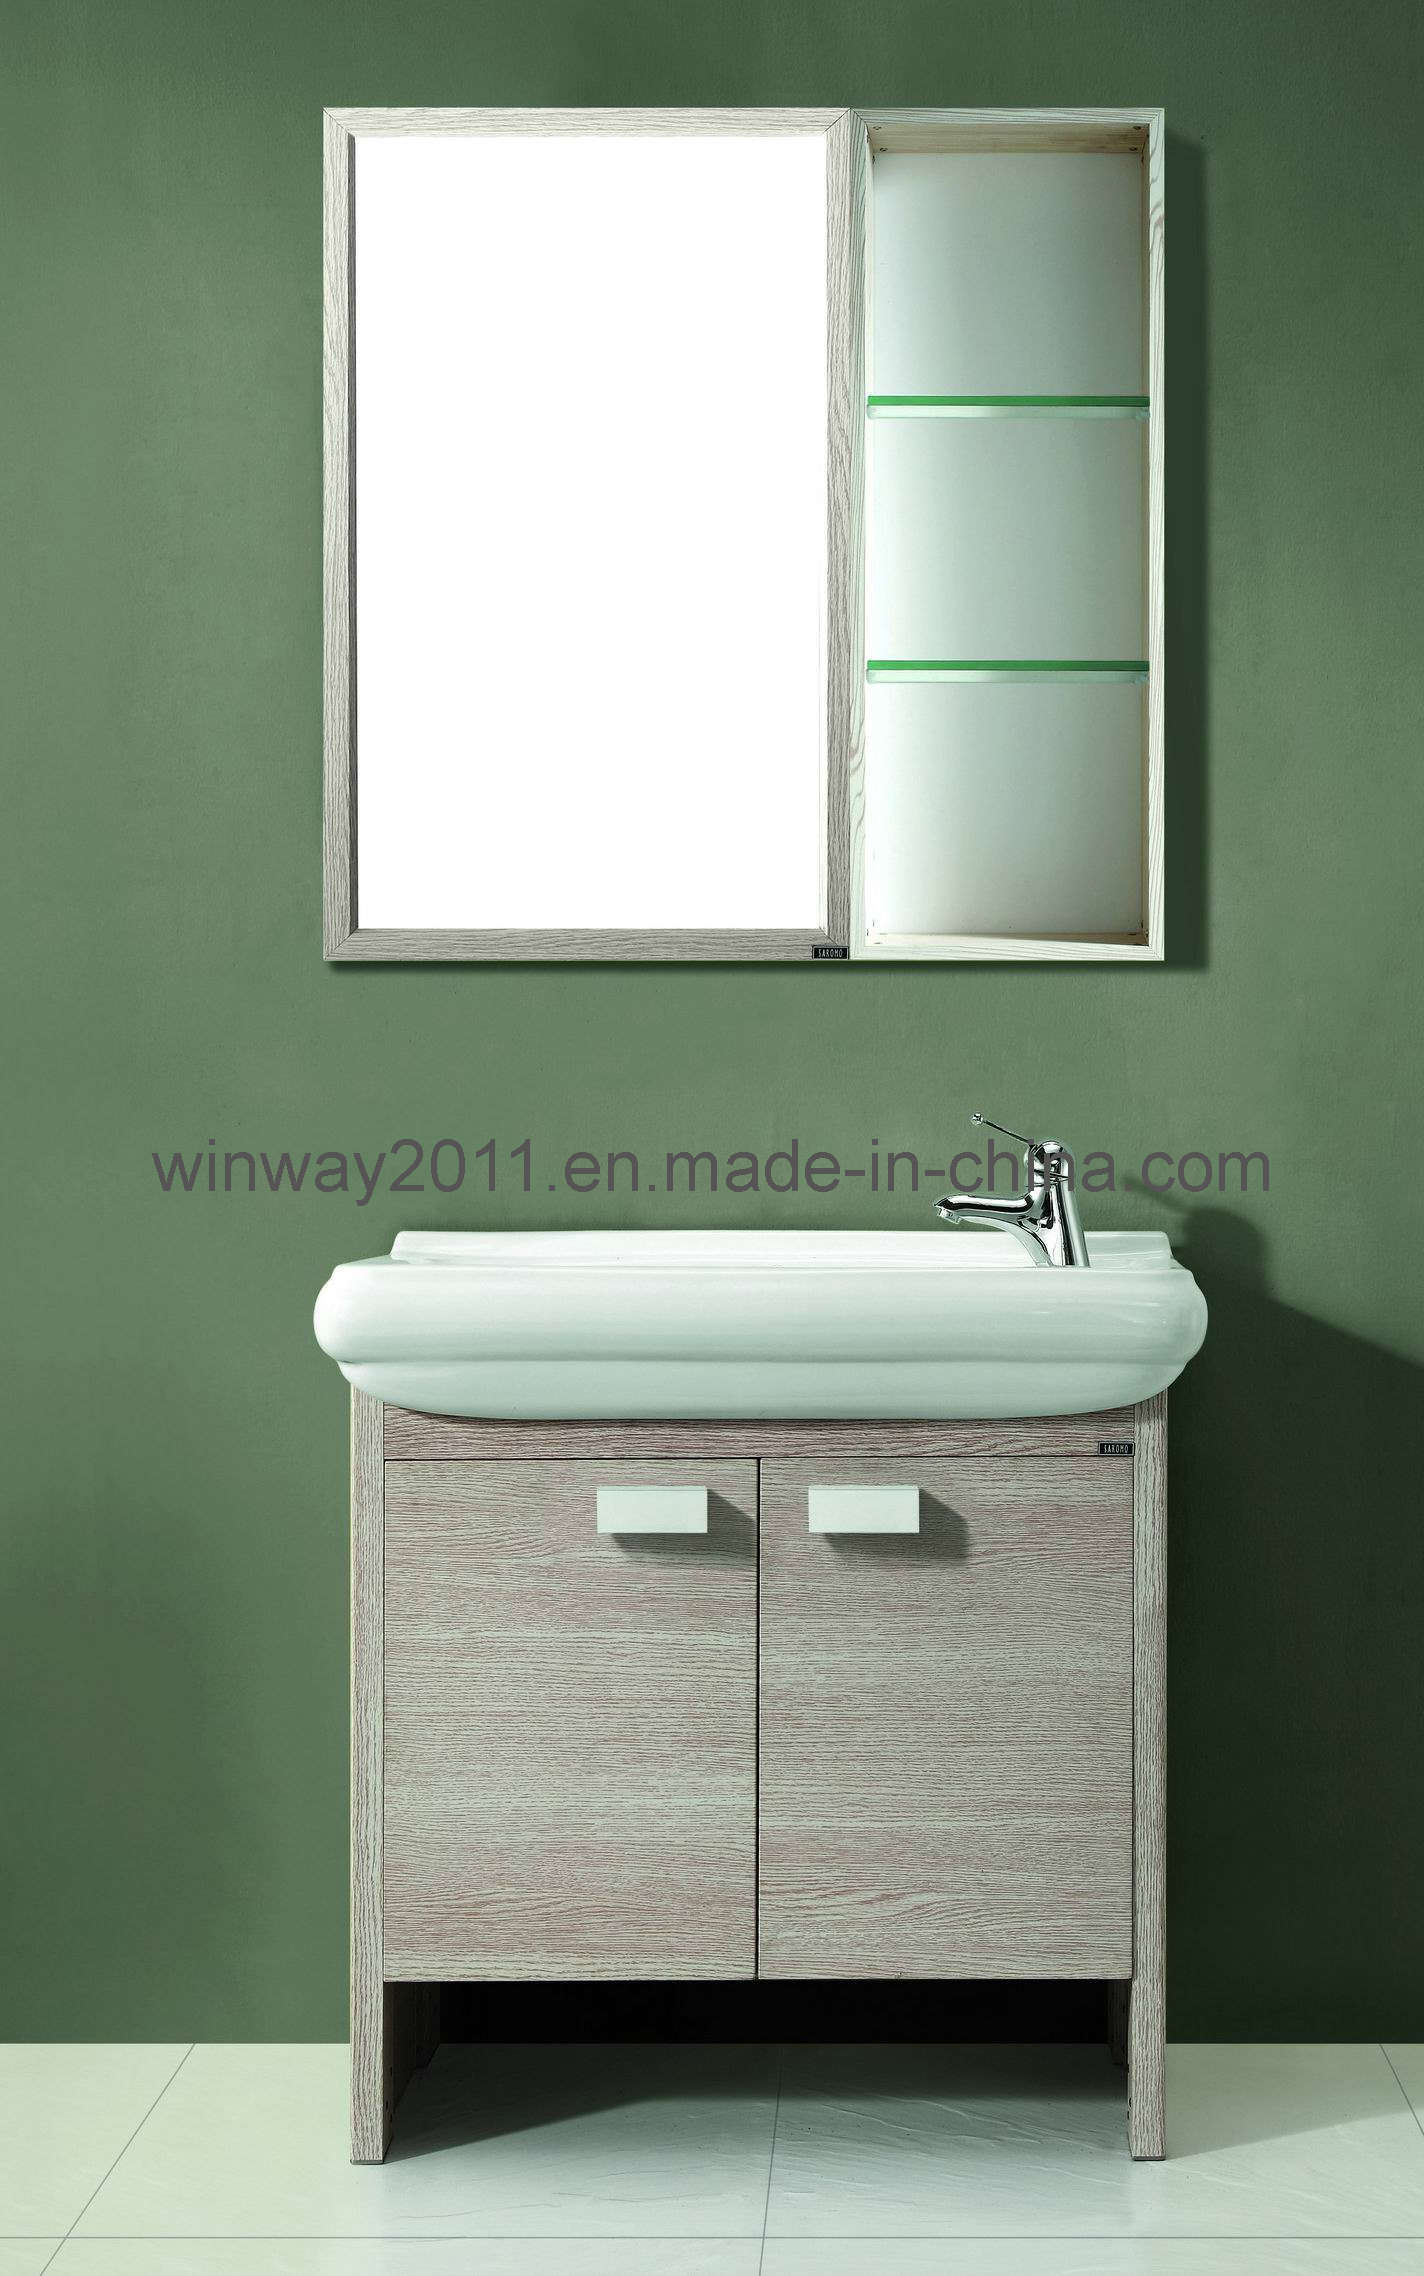 metal bathroom cabinet vanity ws 68033 china stainless cabinet